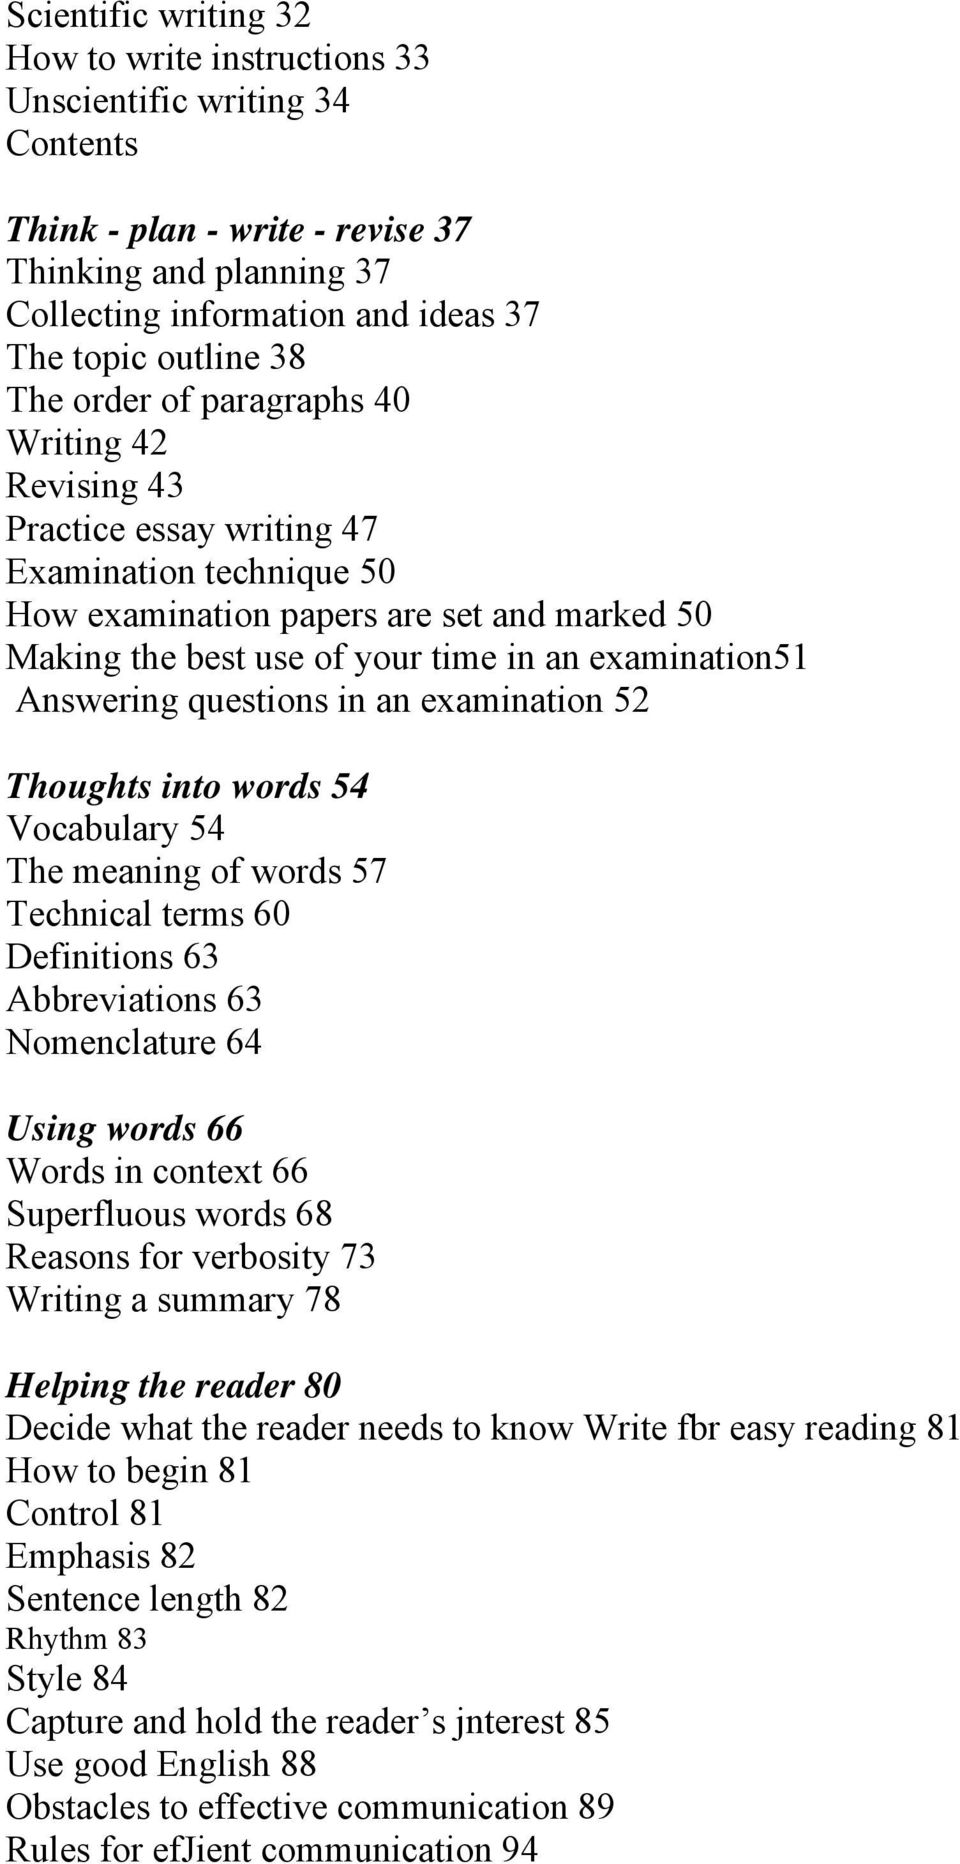 Answering questions in an examination 52 Thoughts into words 54 Vocabulary 54 The meaning of words 57 Technical terms 60 Definitions 63 Abbreviations 63 Nomenclature 64 Using words 66 Words in